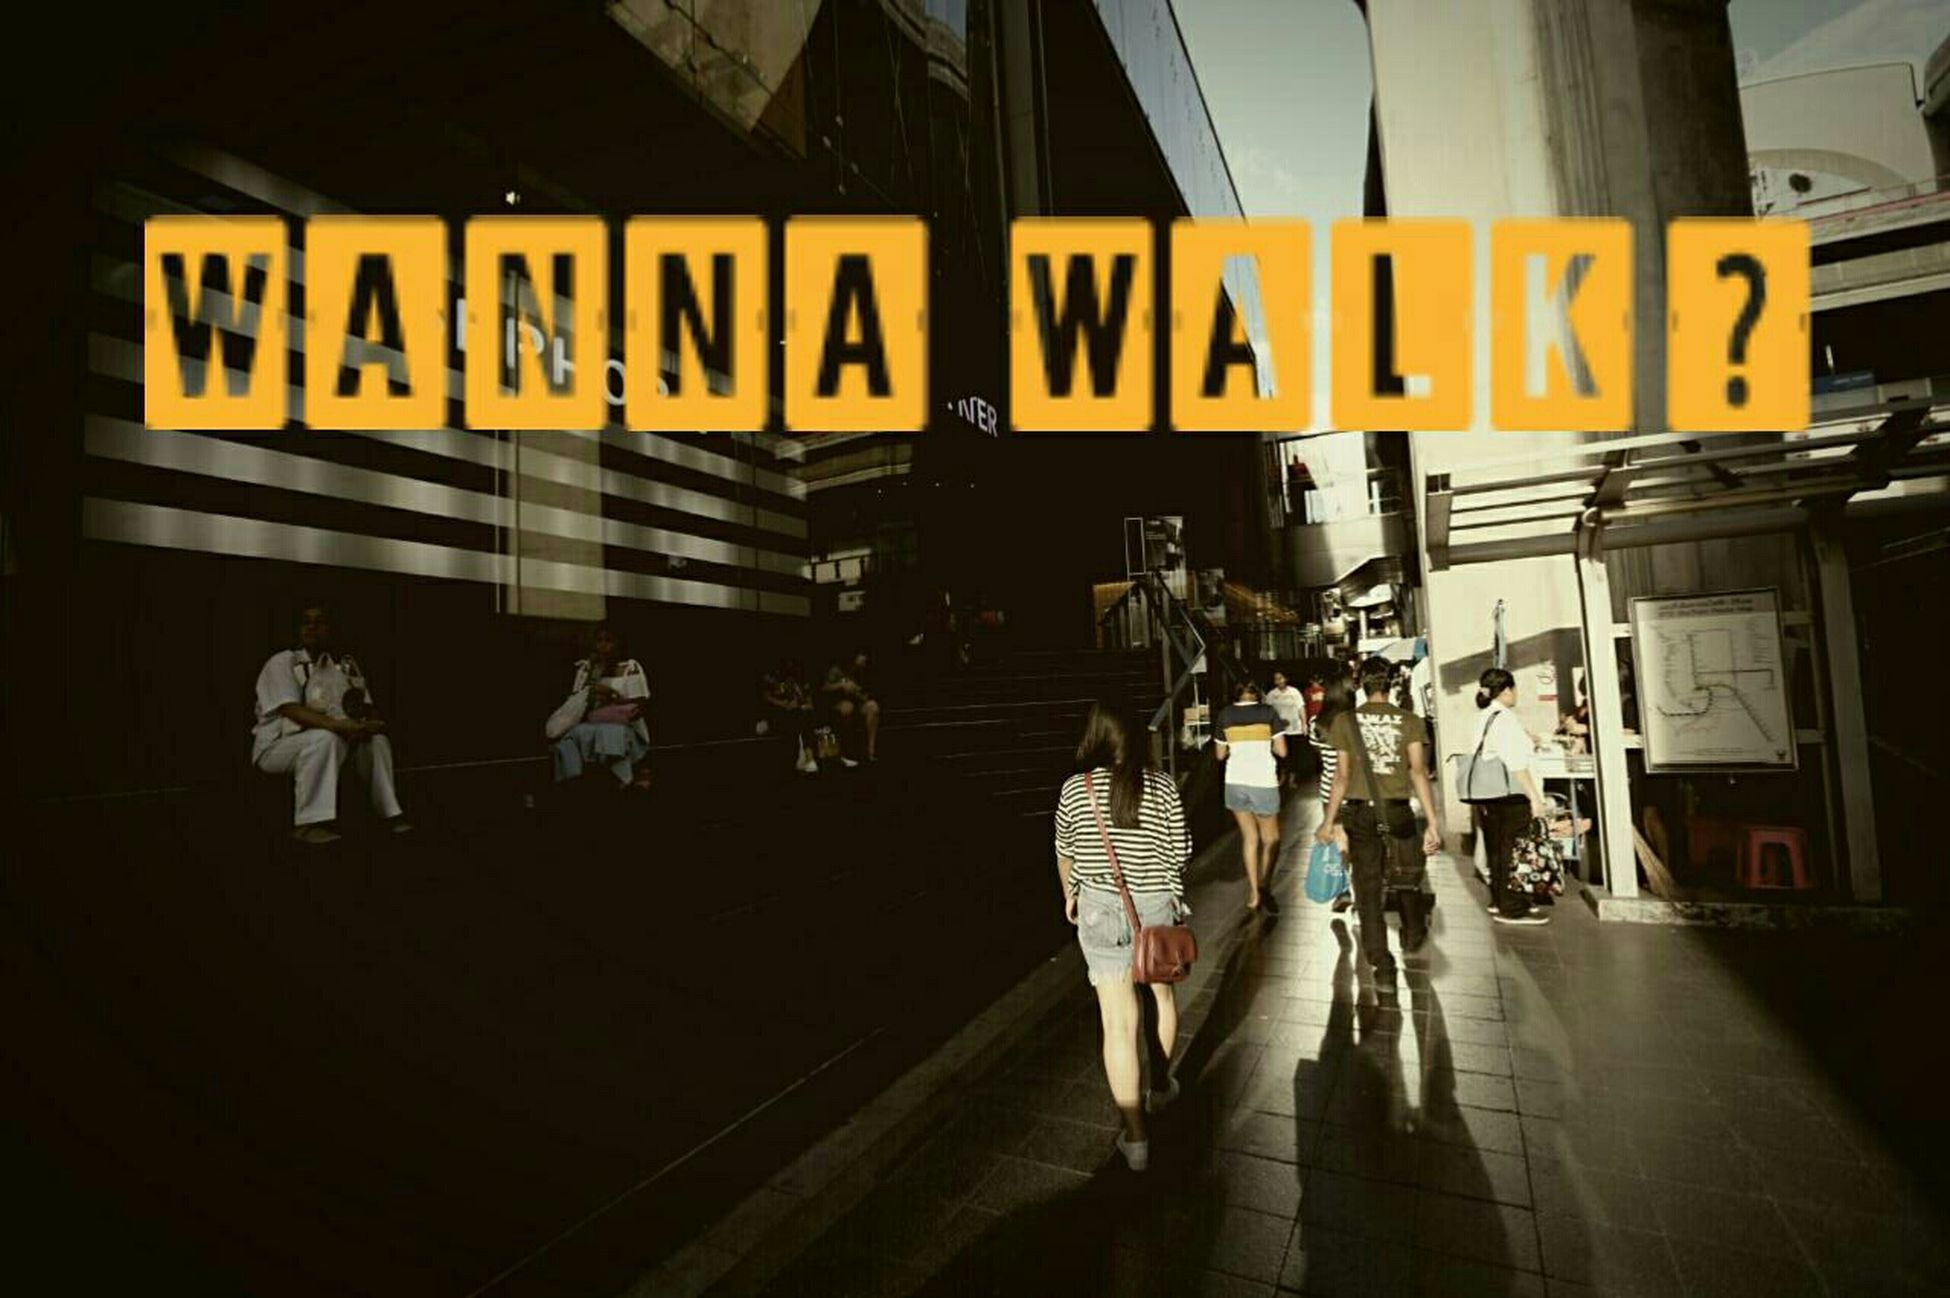 Walk Walking Around The City  Wanna Walk With Me? City Siam Paragon